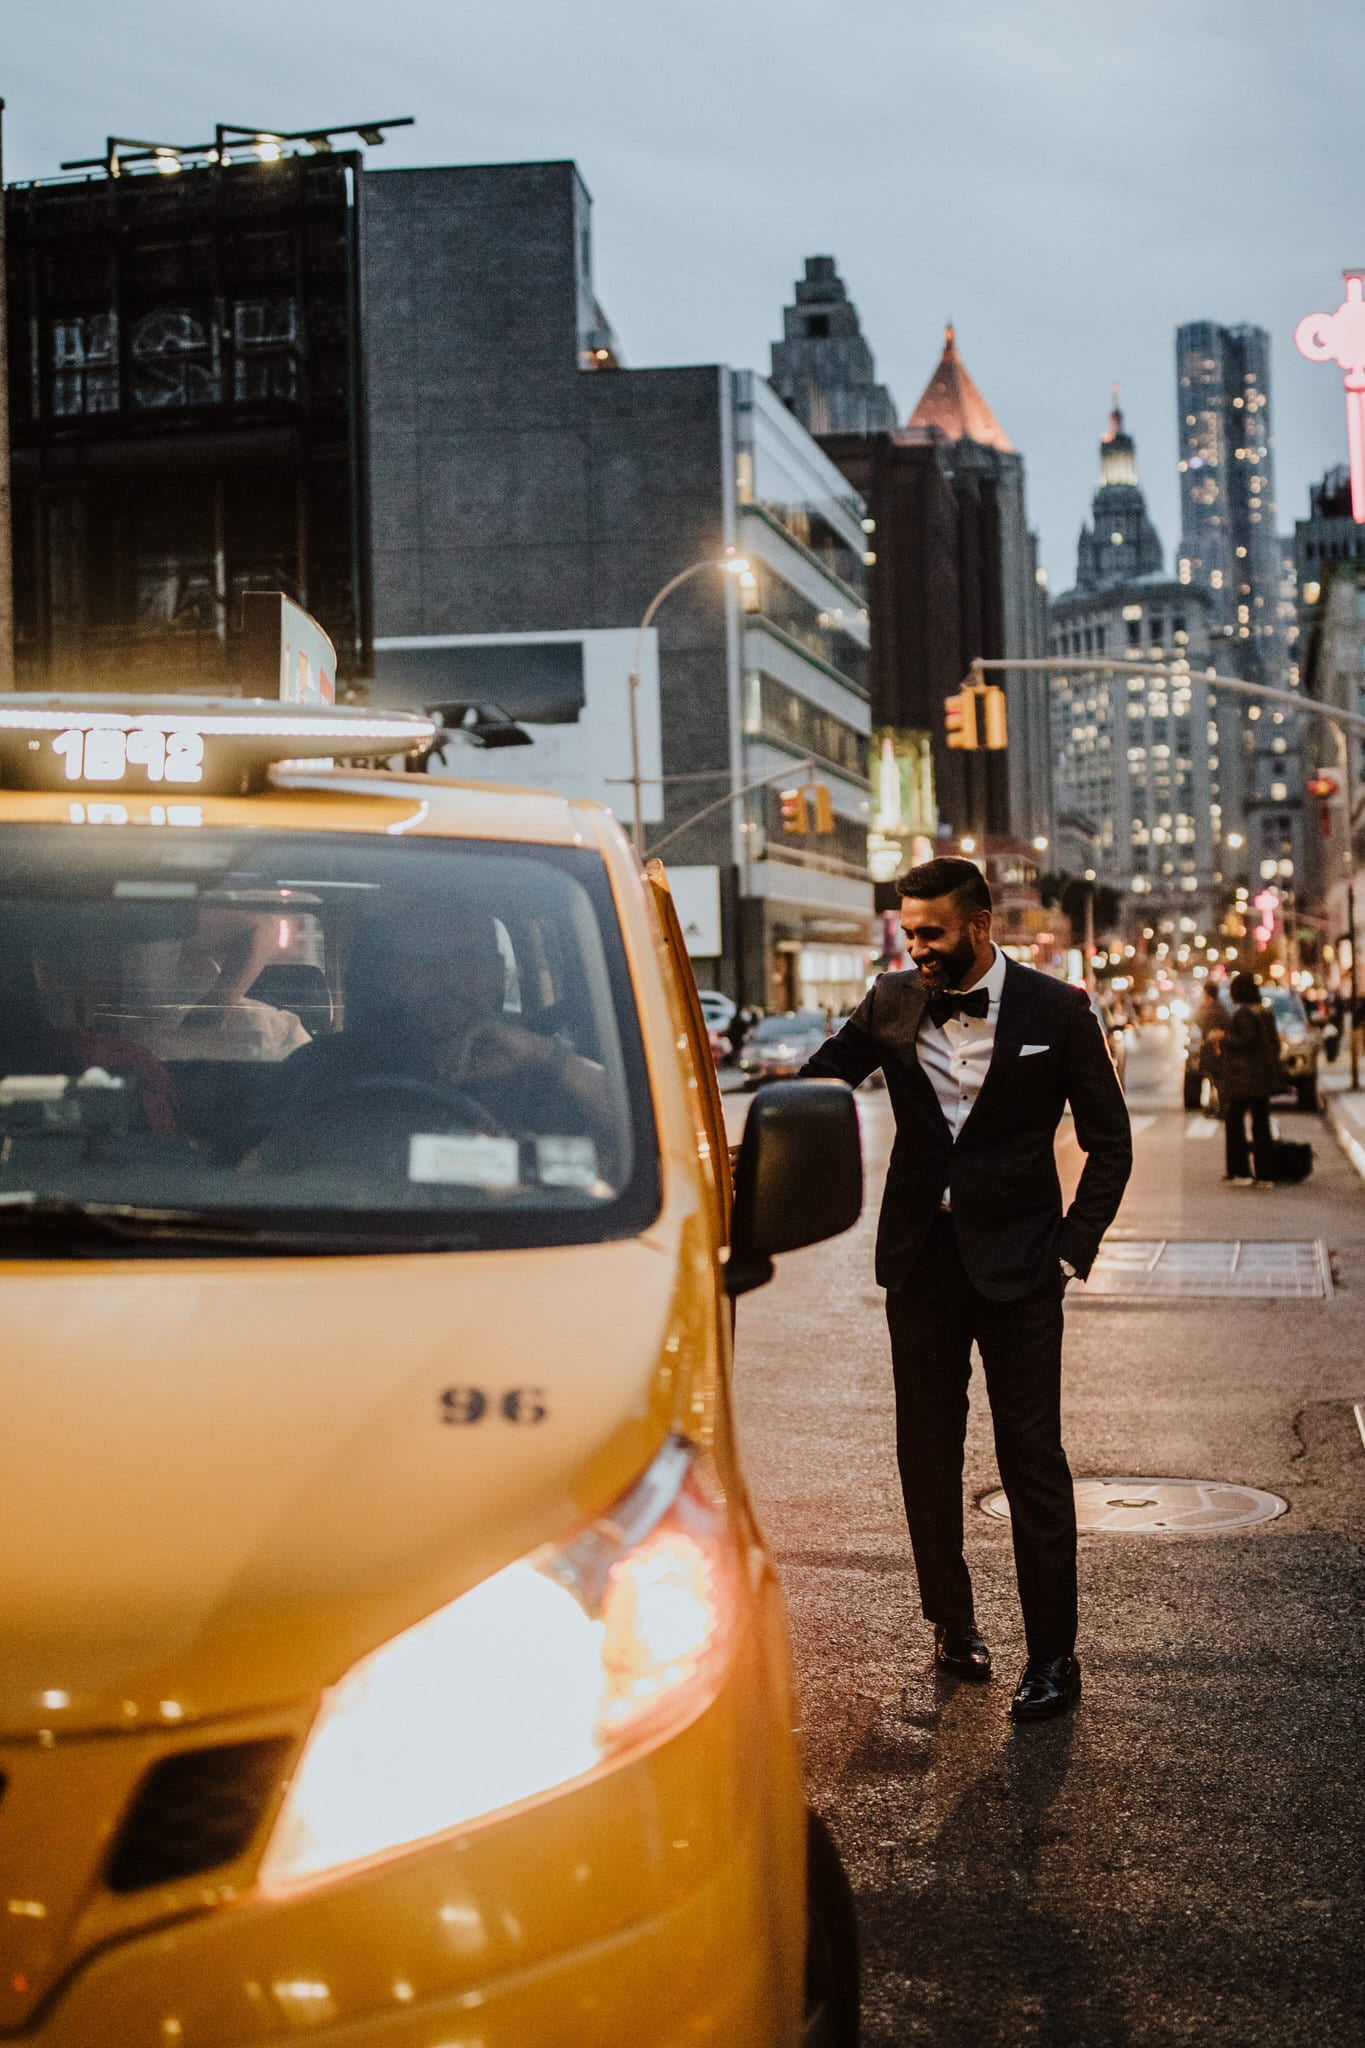 The bride and groom catch a taxi in New York at dusk. Wedding Photographer Brent Calis.